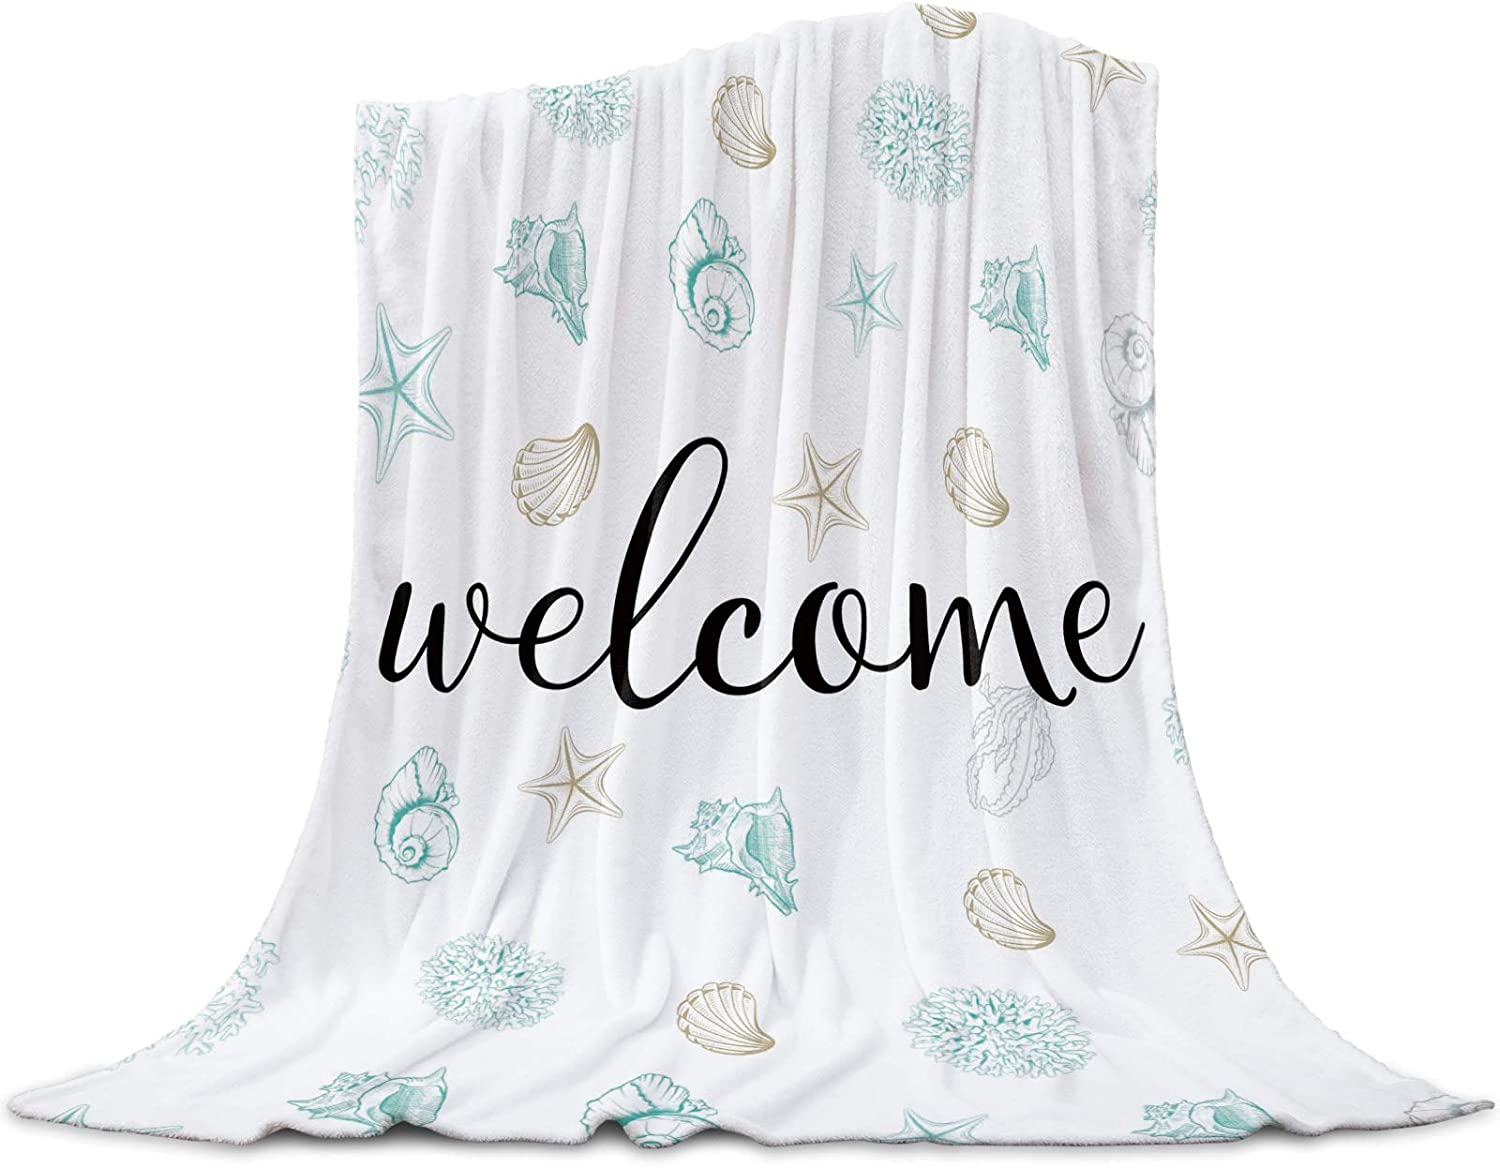 Ultra Soft Flannel Fleece 5% OFF Bed Max 84% OFF Blanket Coral Shell Creat Starfish